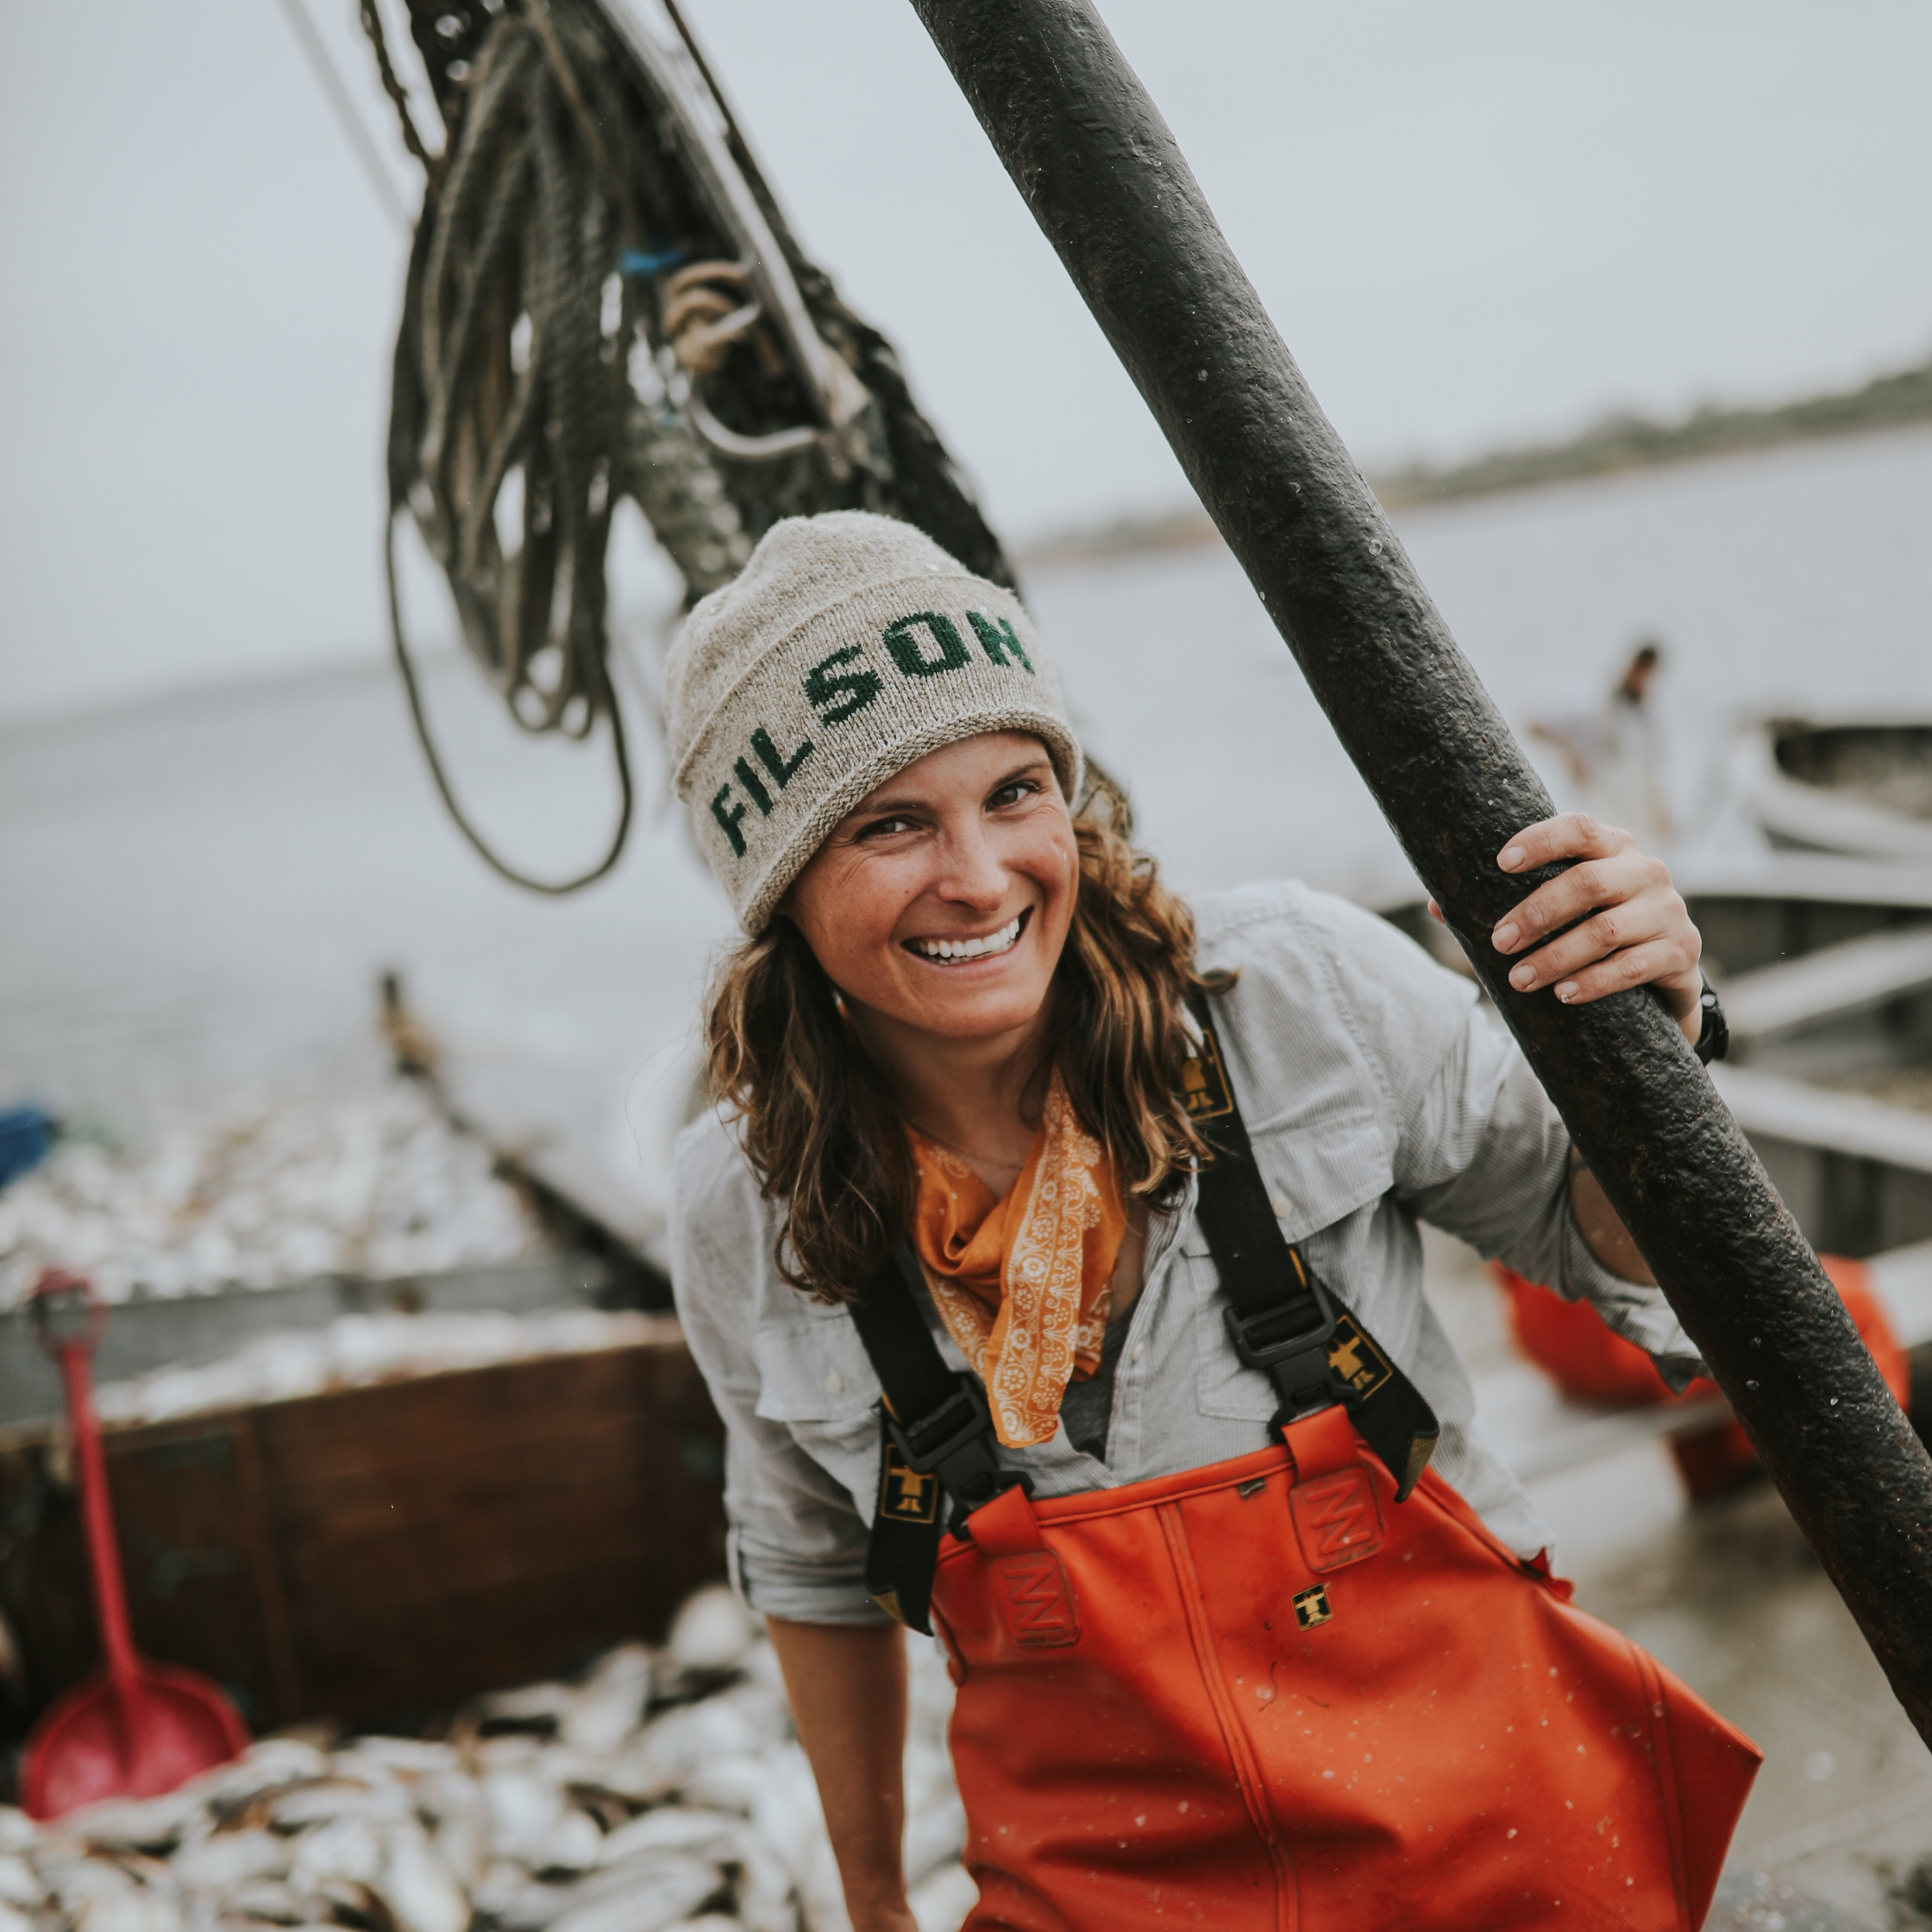 fashion - Style inspired by the fishing and with fishing and the environment in mind.